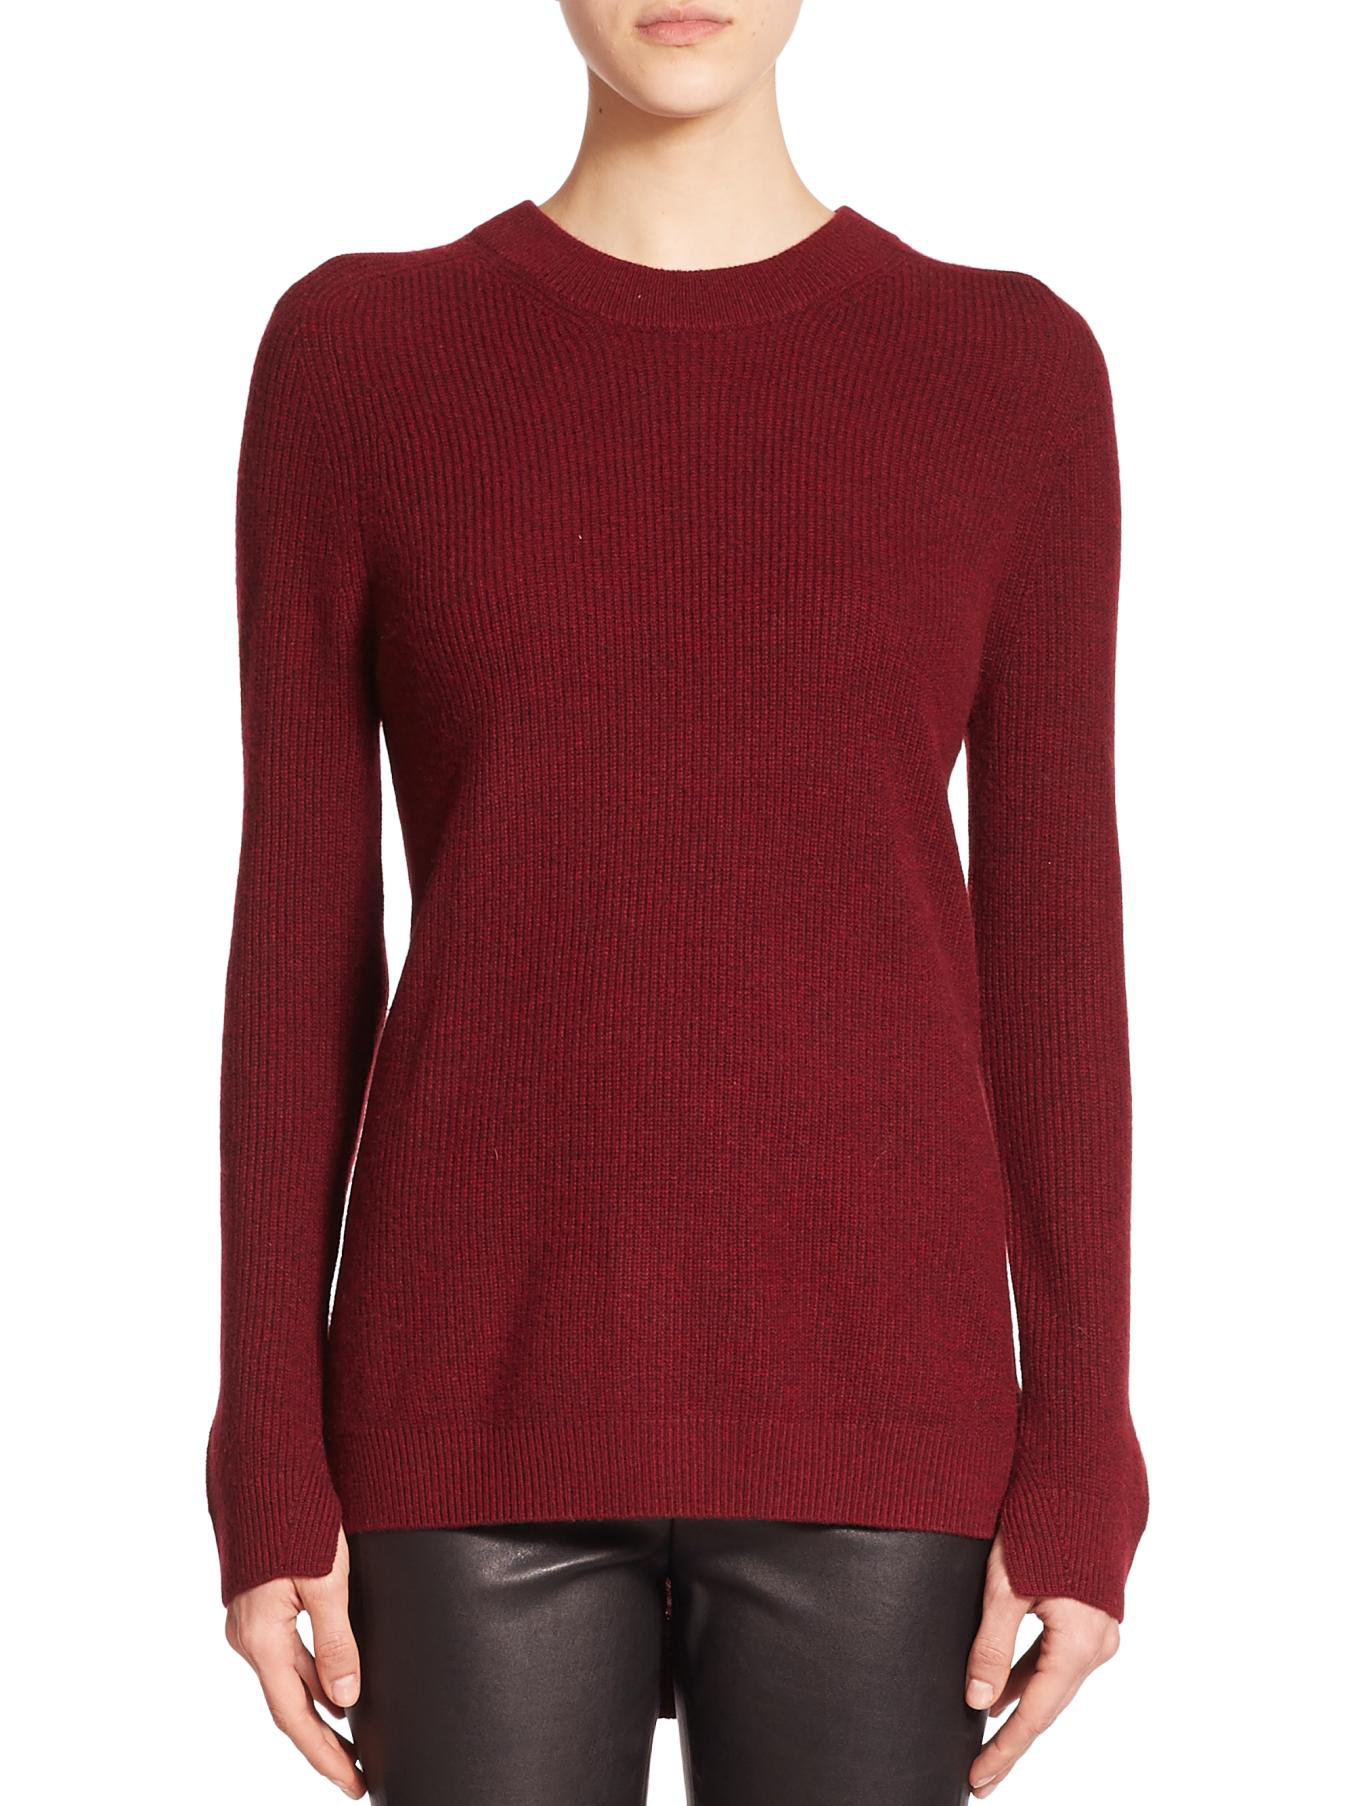 Rag & bone Valentina Ribbed Cashmere Sweater in Red | Lyst